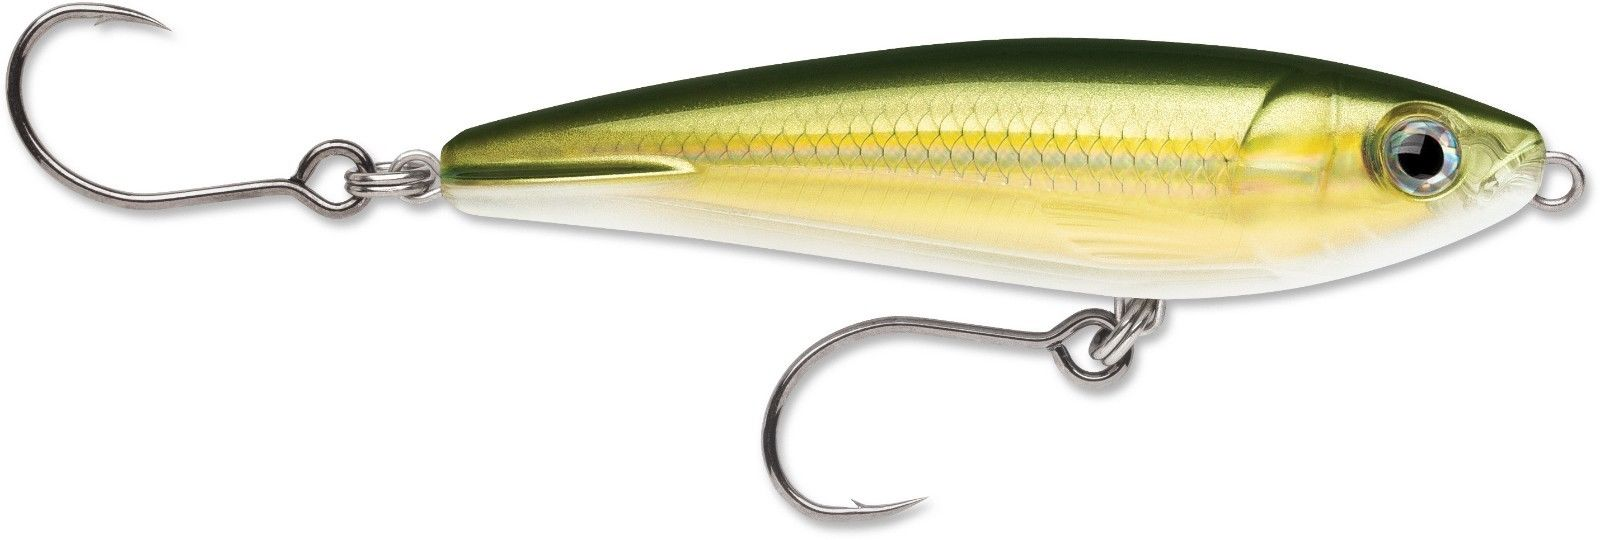 Rapala X-Rap Saltwater SubWalk 09 Topwater Subsurface Walker